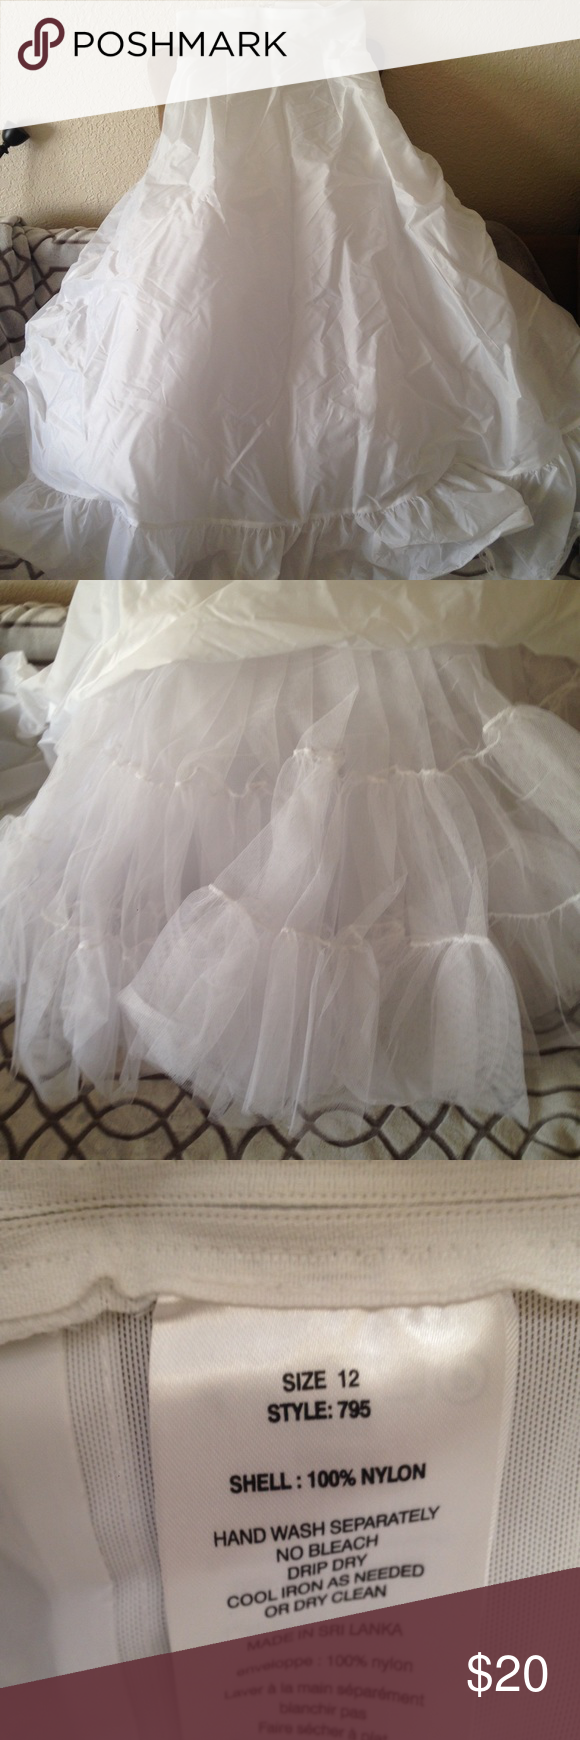 Tulle underskirt Great underskirt to give any dress that extra ...